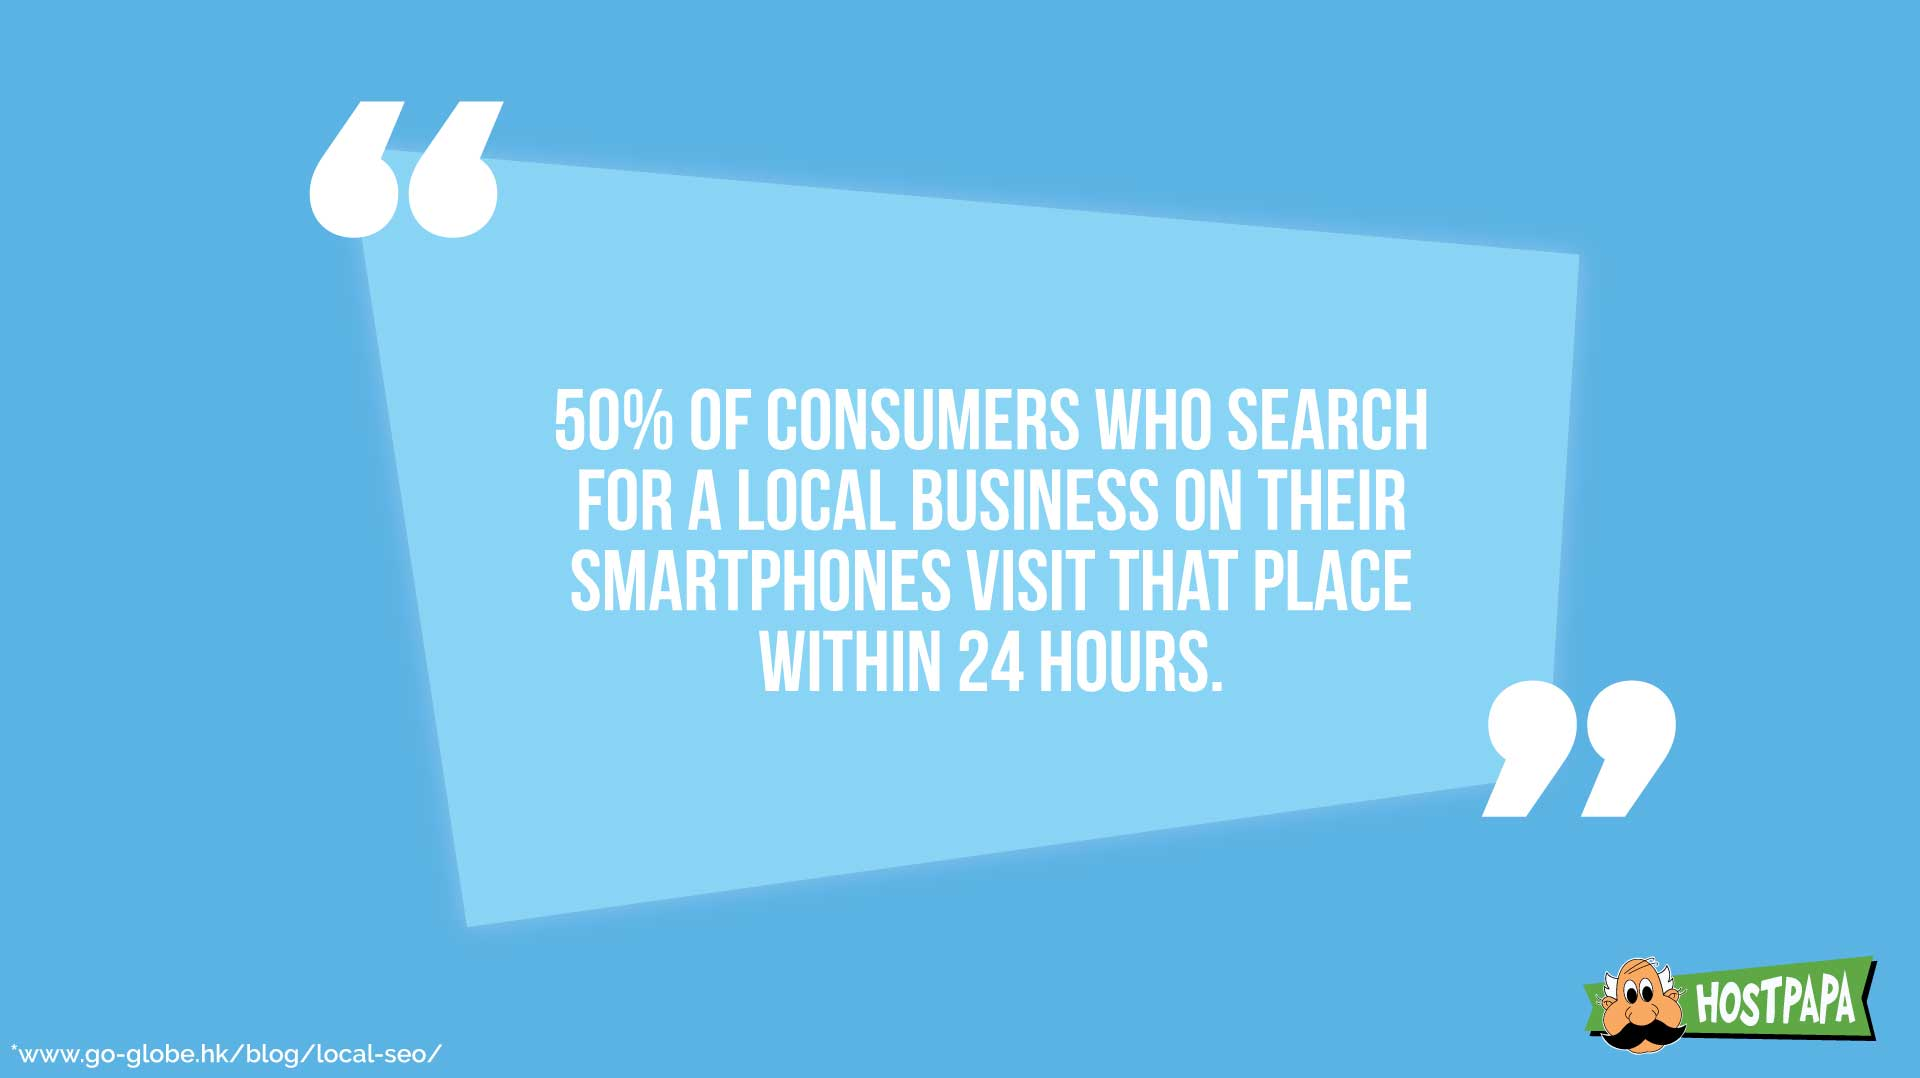 Customers that search a local business through their smartphones, visit that place within 24 hrs